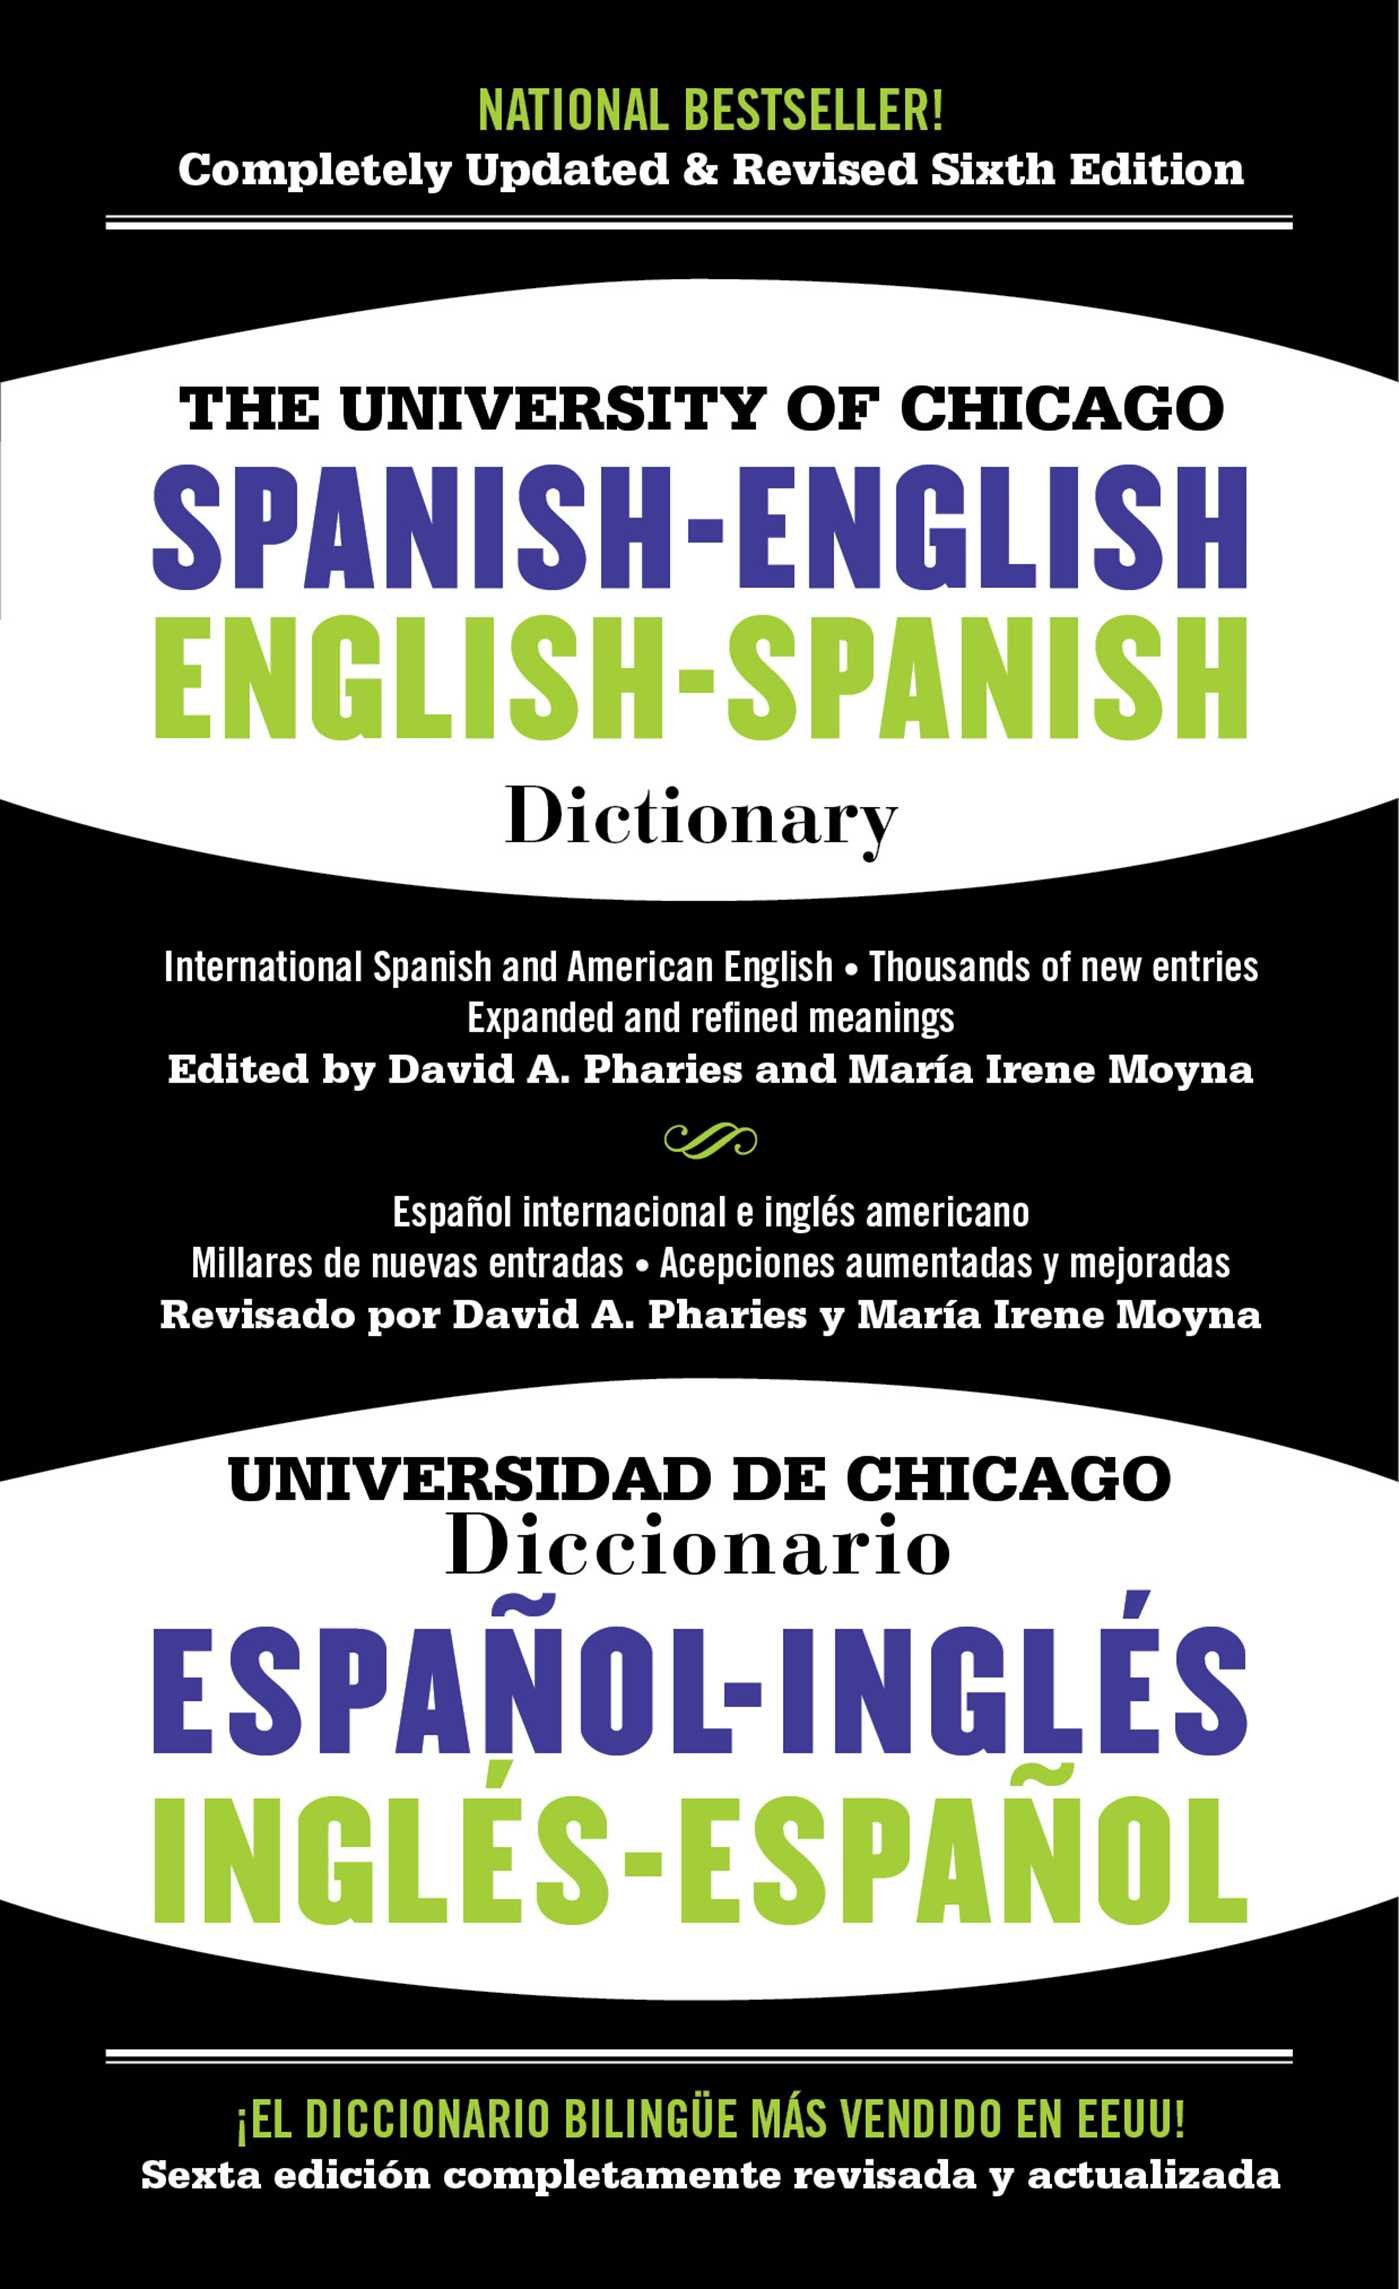 The University Of Chicago Spanish English Dictionary 6th Edition